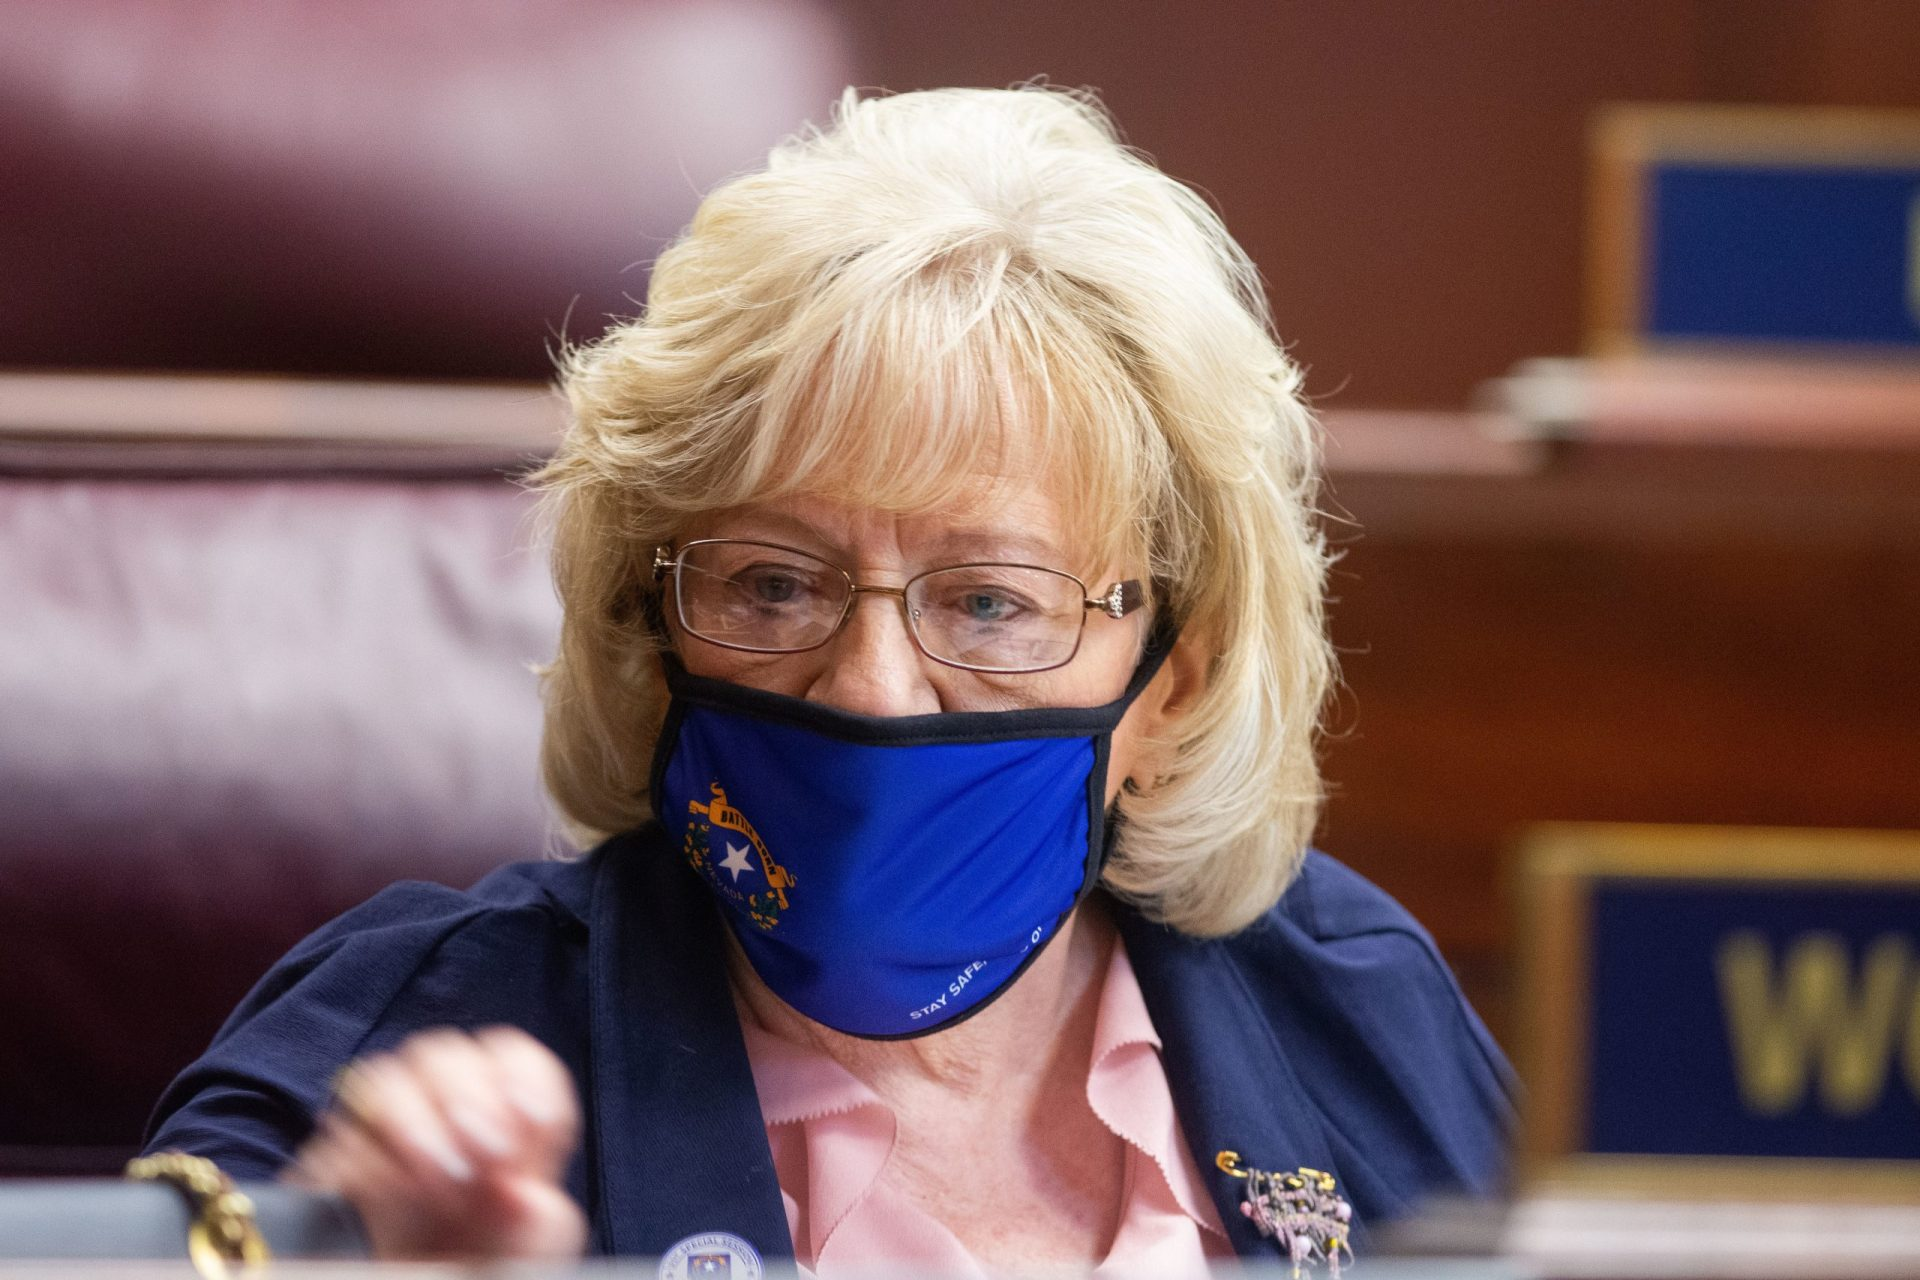 Nevada State Senator, Joyce Woodhouse, inside the Senate chambers at the Nevada Legislature on the first day of the 31st Special Session in Carson City, Nev., on Wednesday, July 8, 2020. (David Calvert/The Nevada Independent)